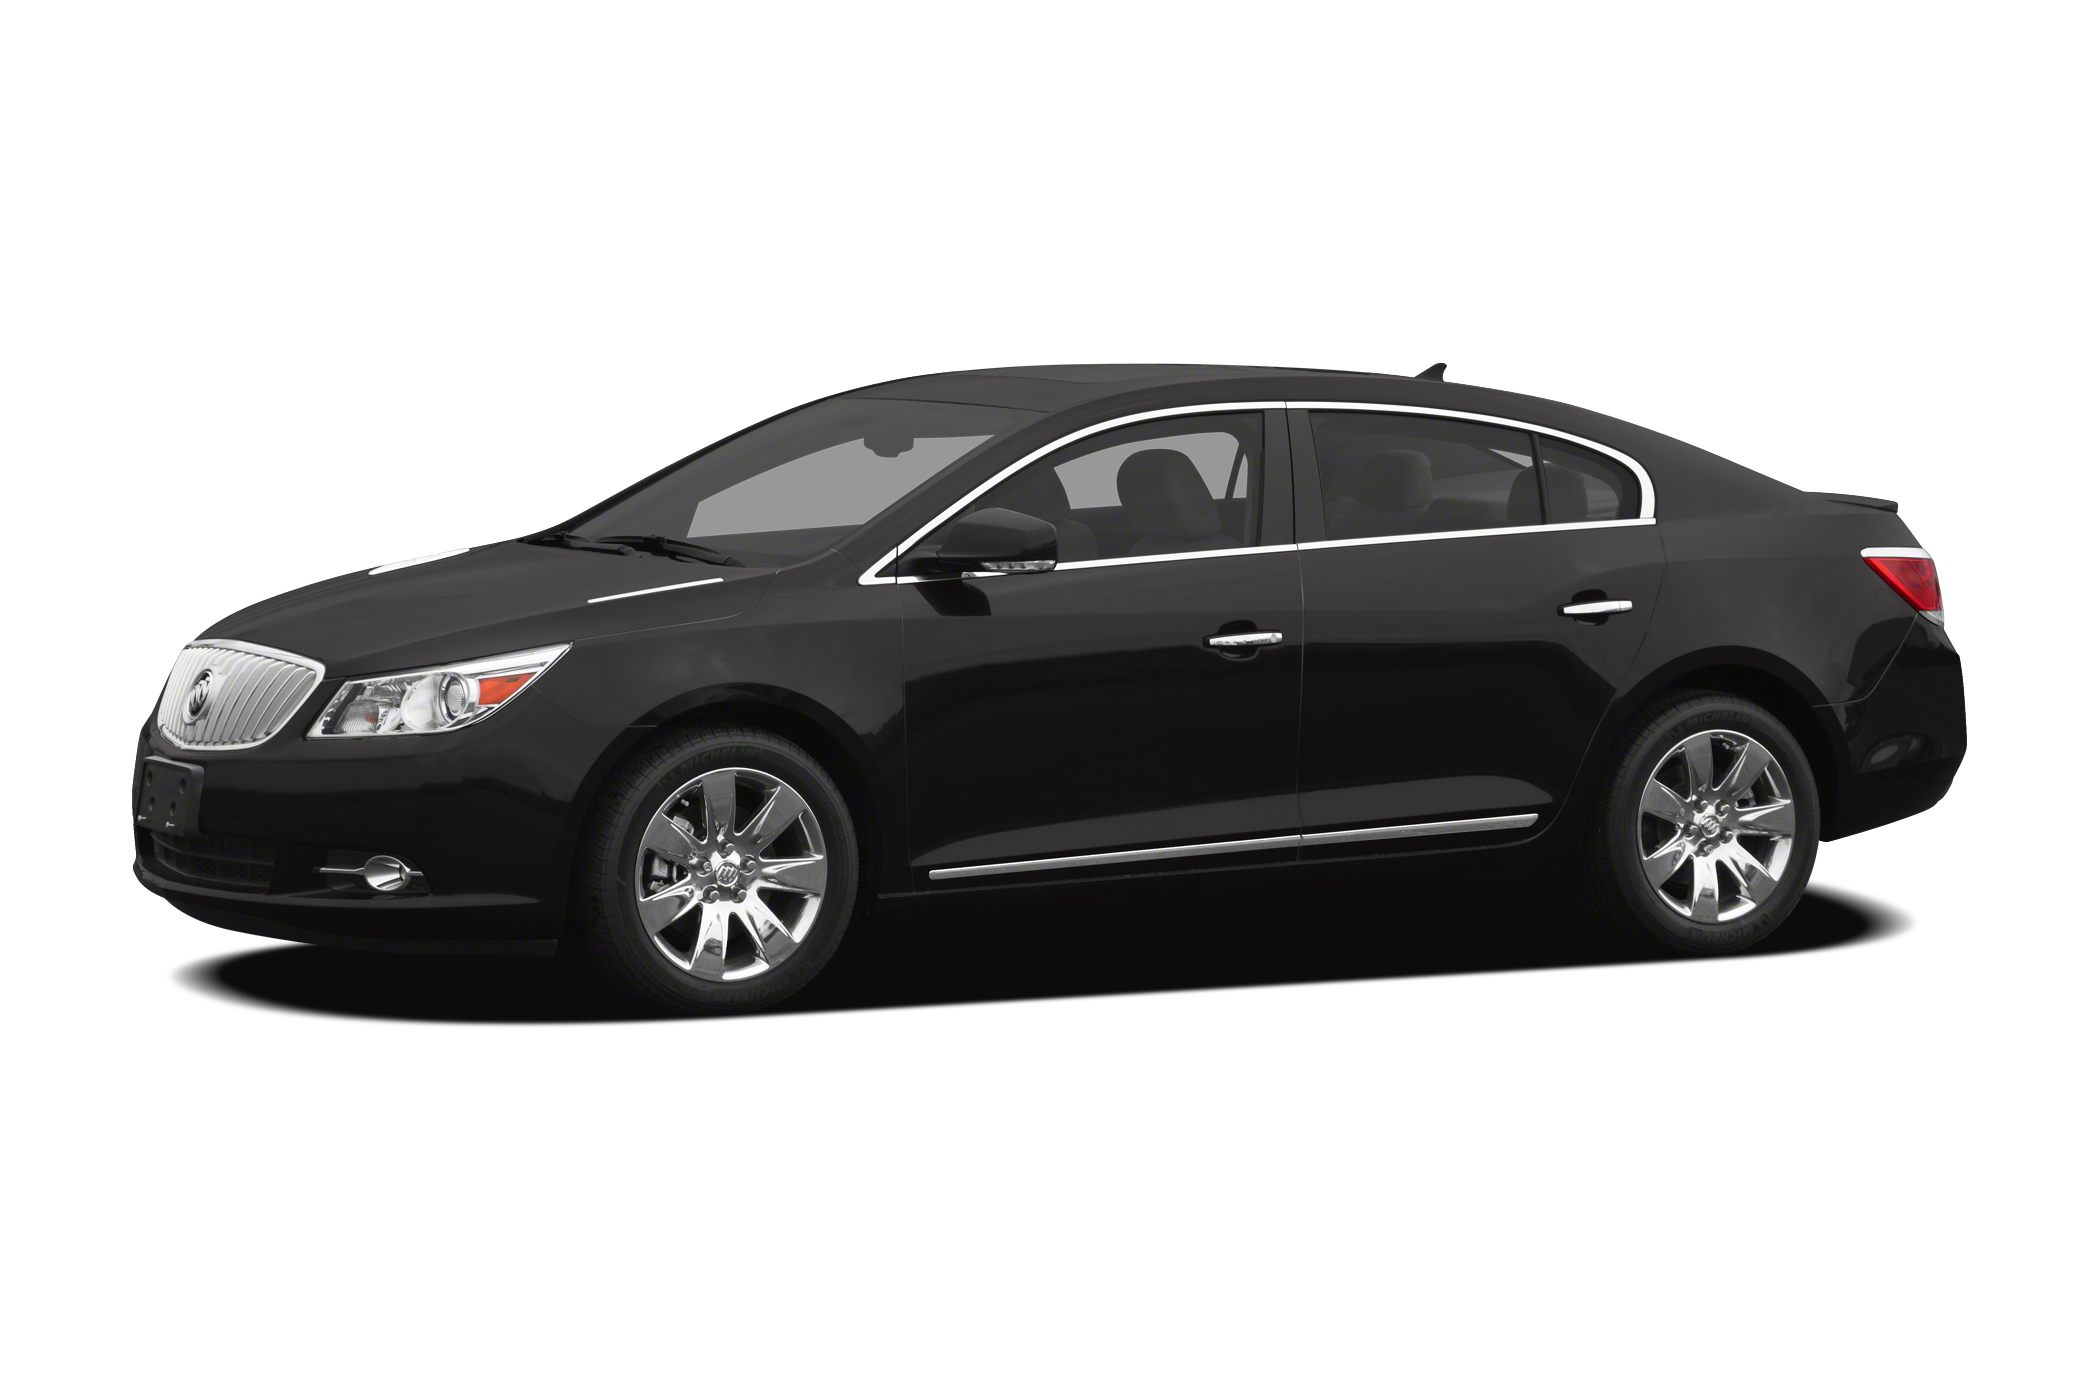 2012 Buick LaCrosse Premium 1 Sedan for sale in South Hill for $28,990 with 29,933 miles.